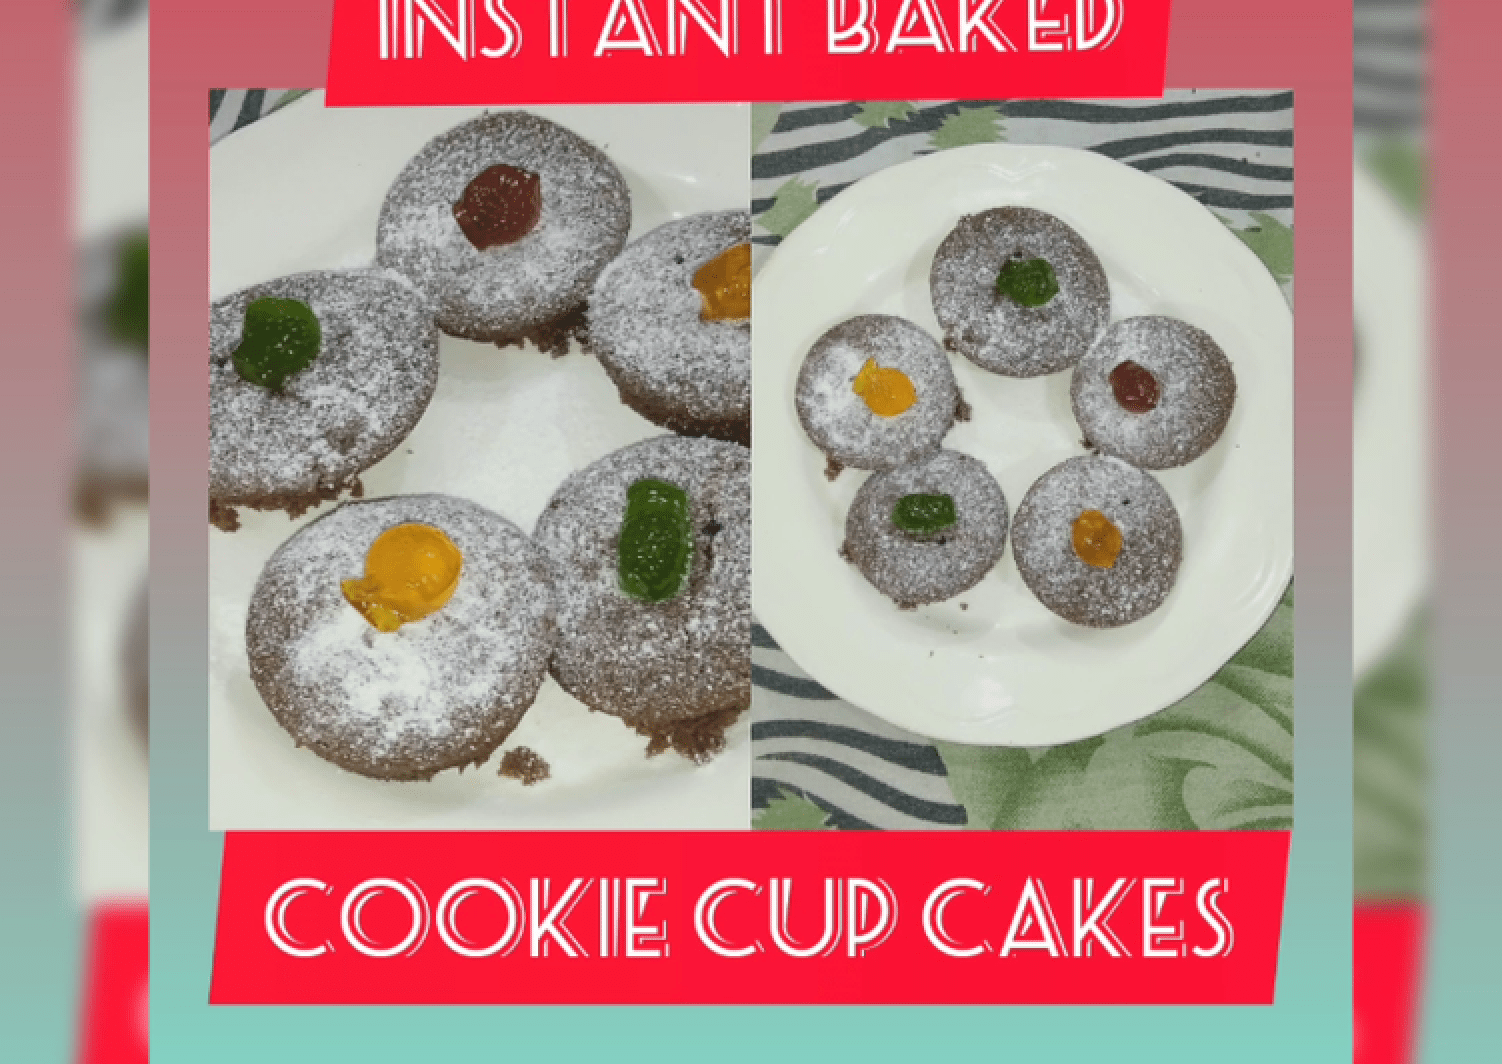 Instant Baked Cookie Cupcakes